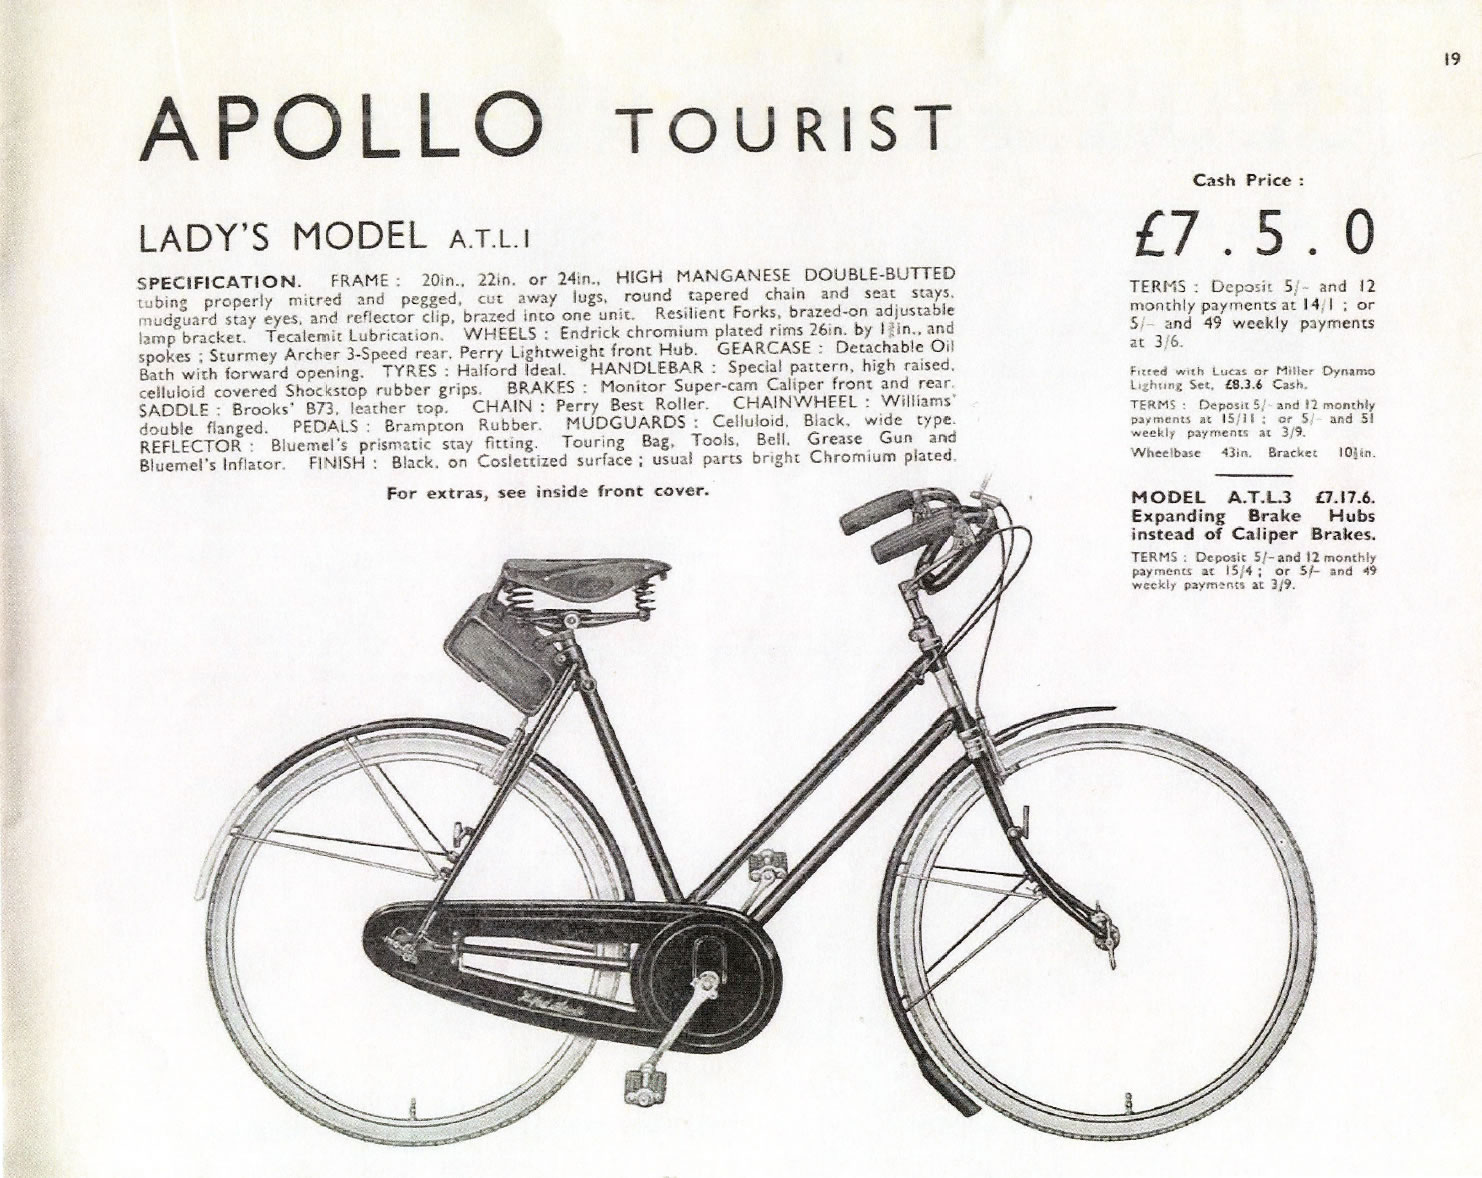 rudge bicycle dating Find great deals on ebay for rudge bicycle and humber bicycle shop with confidence.